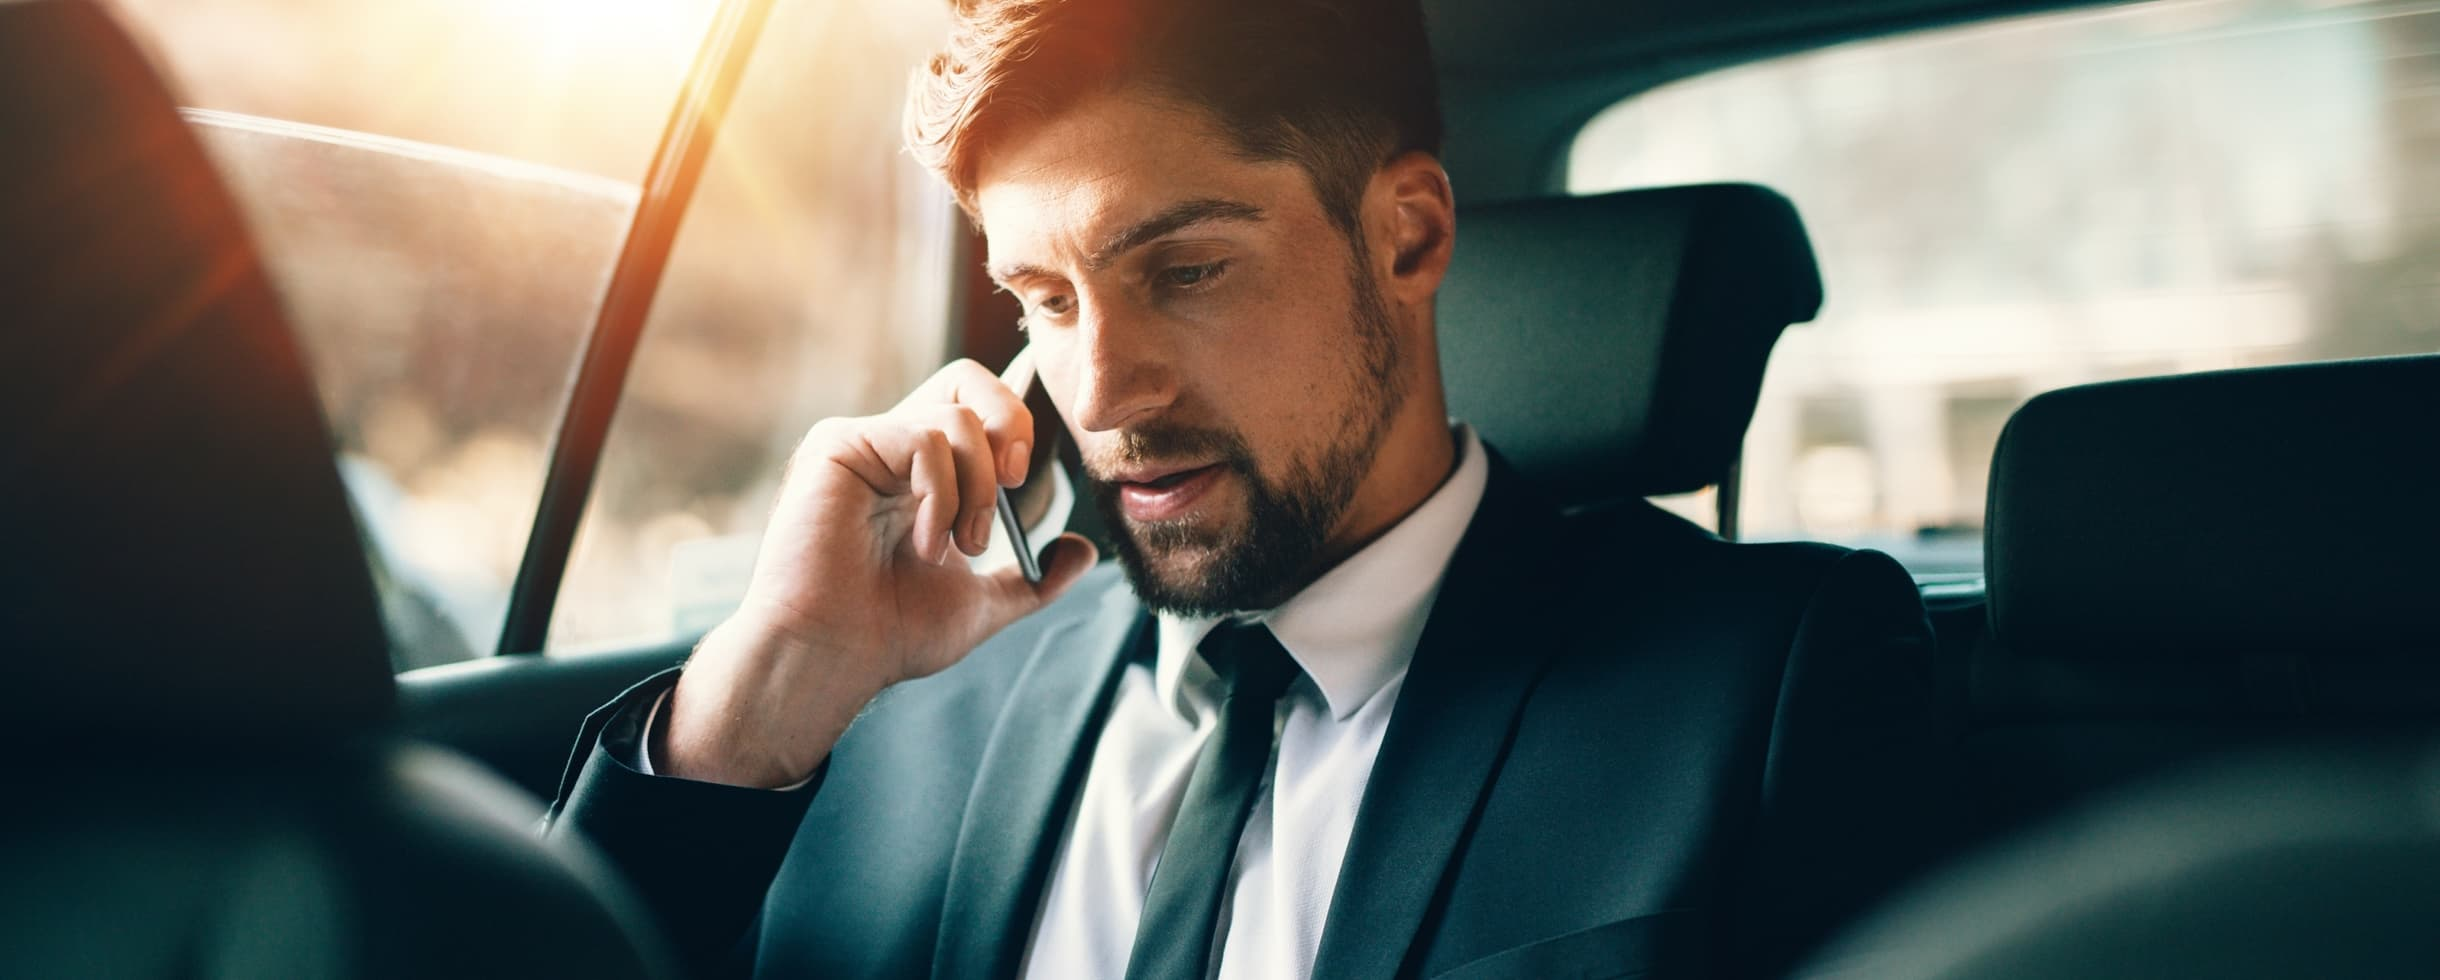 Business man in a suit on the phone in the back of a car